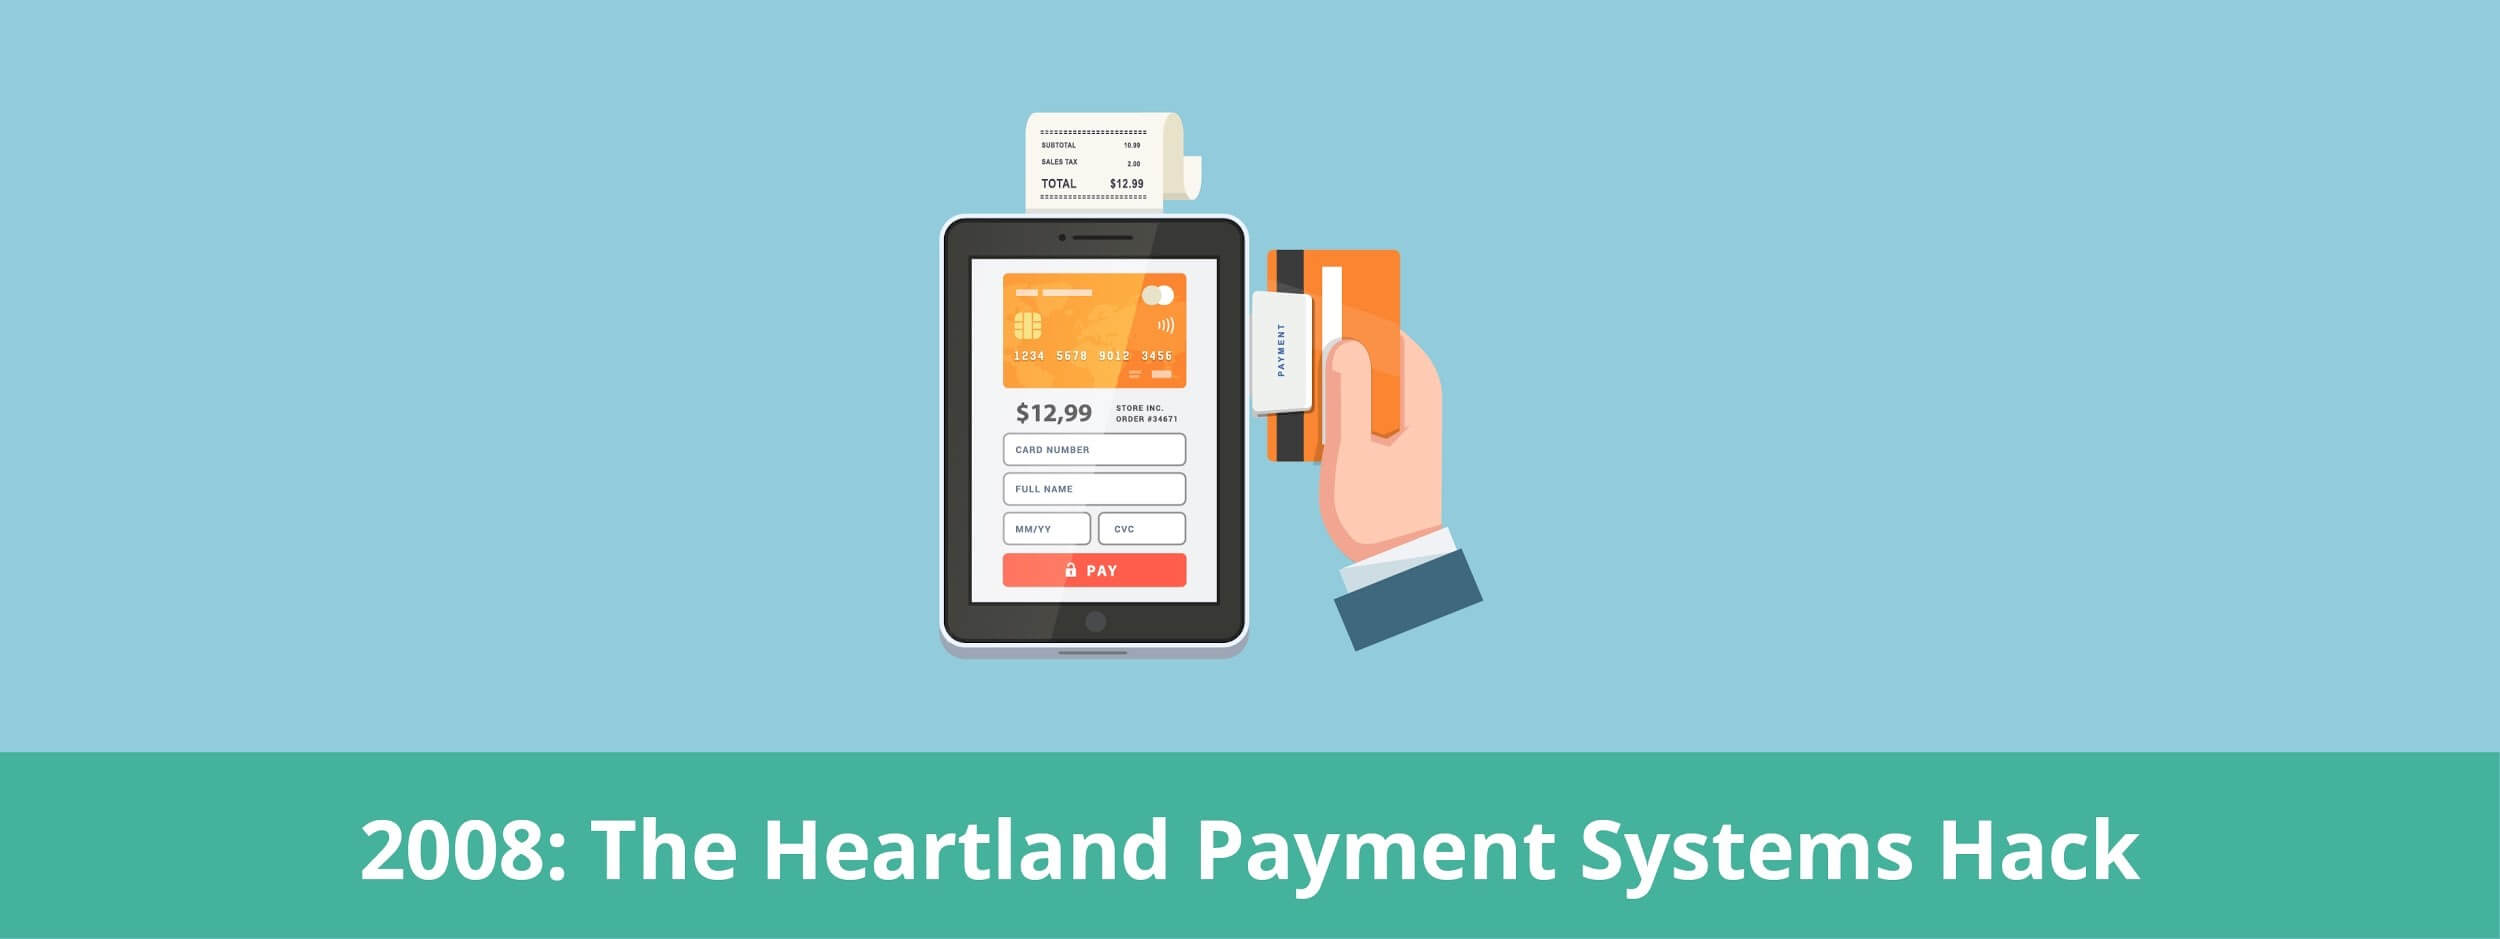 Heartland Payment Systems Hack